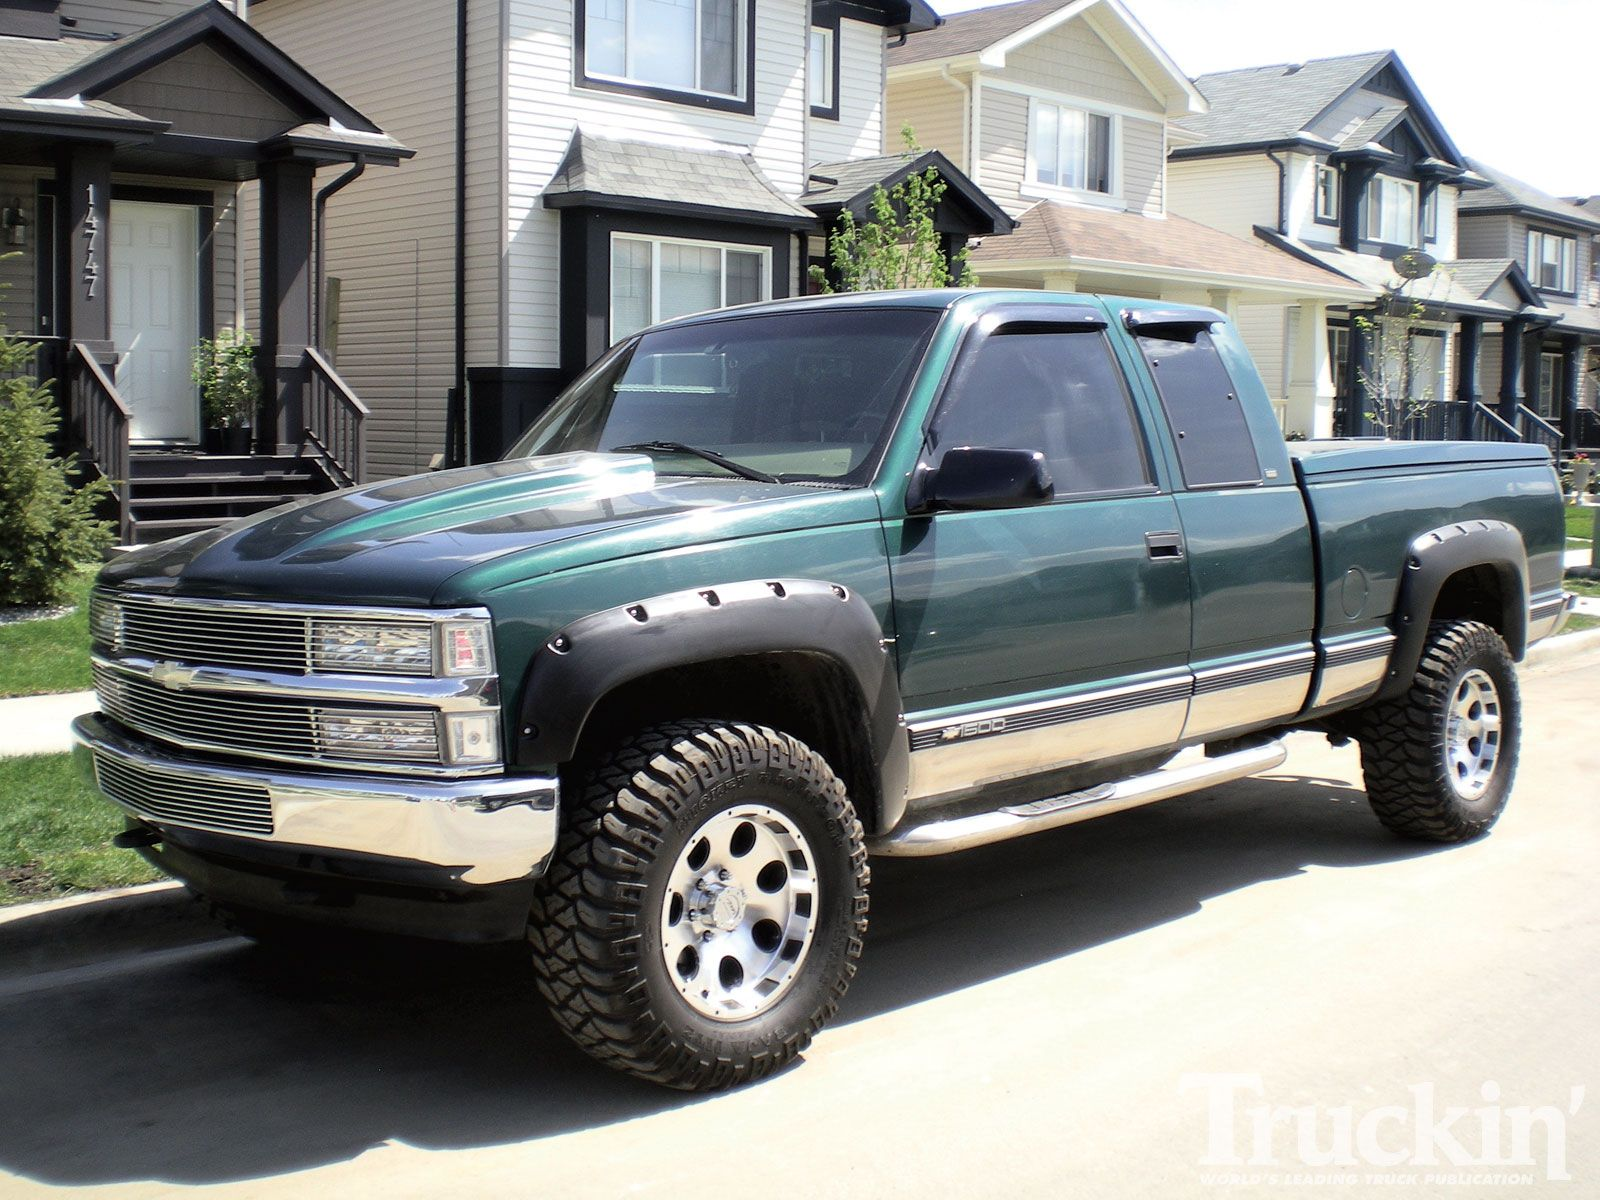 98 chevy silverado parts truckin magazine readers rides 1998 chevy silverado photo 1 [ 1600 x 1200 Pixel ]